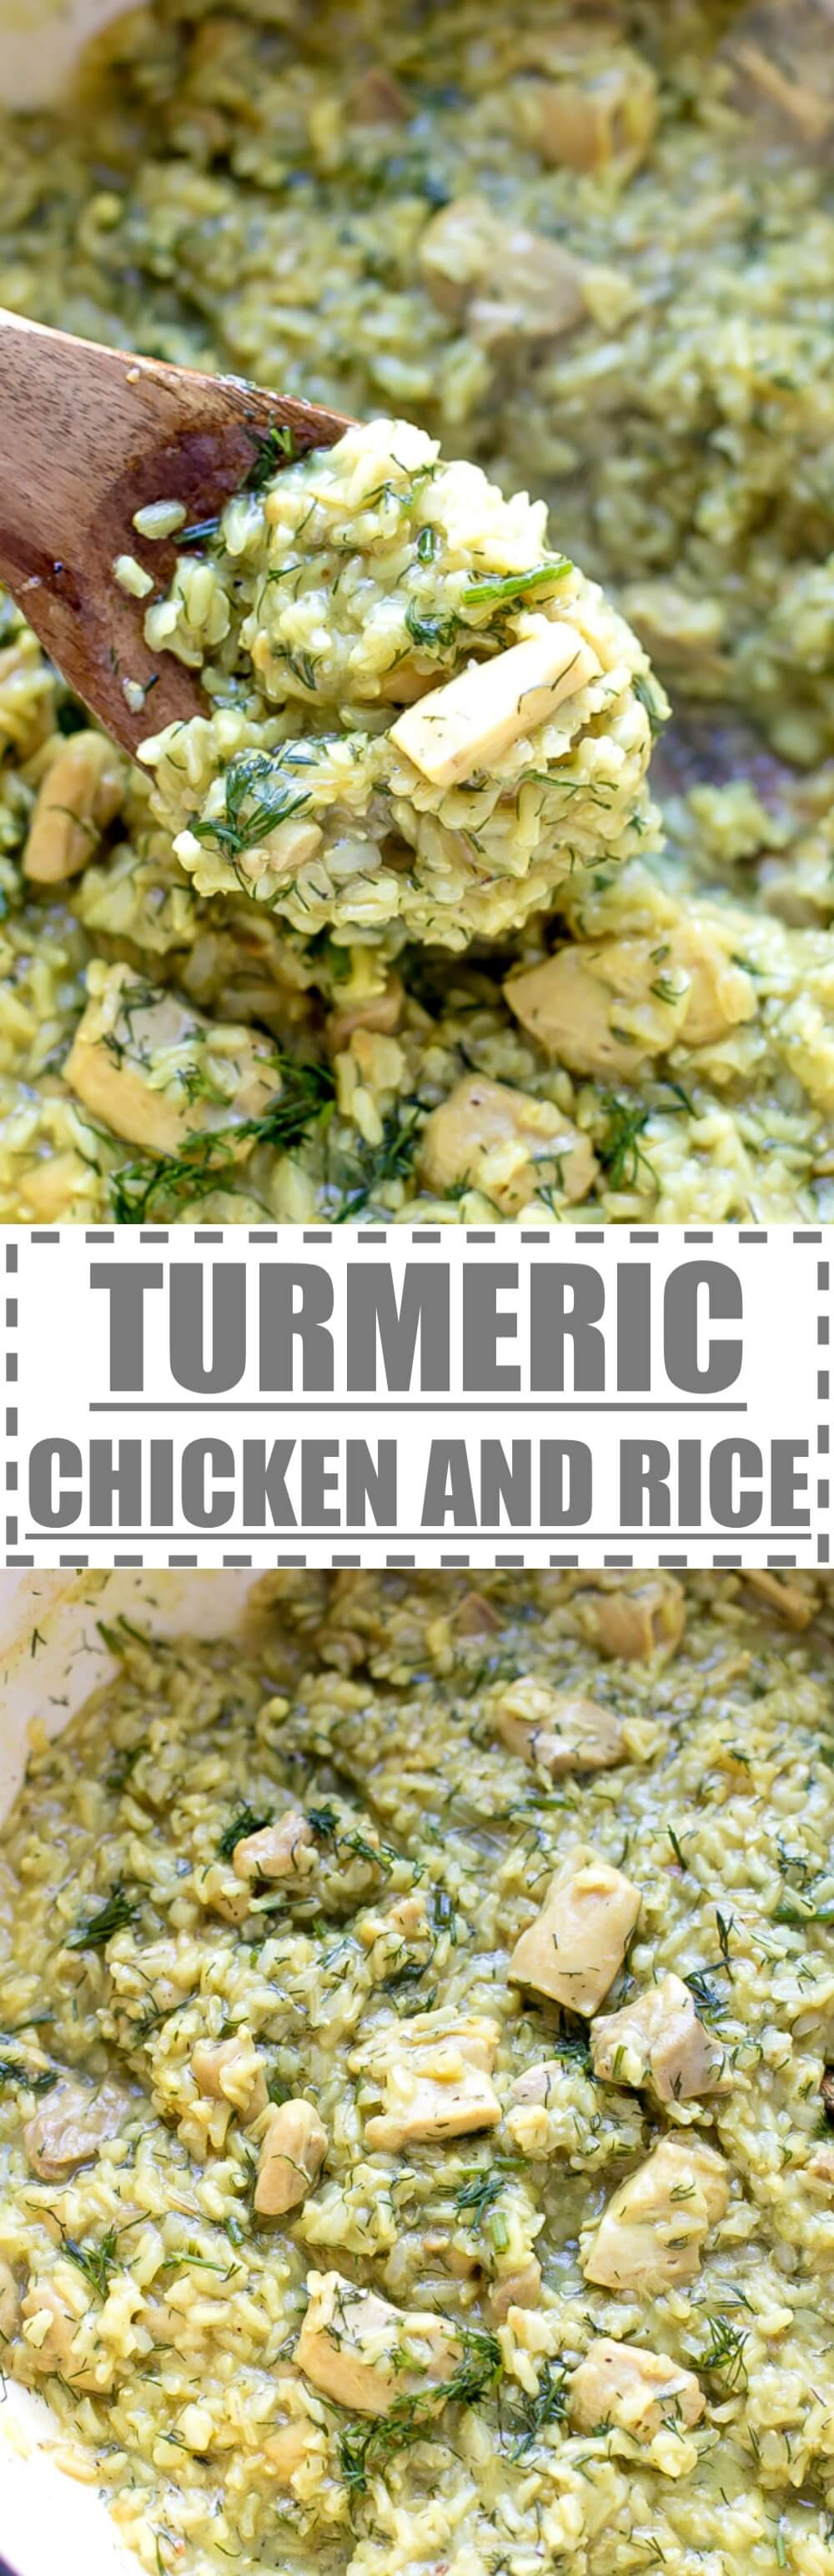 Turmeric Chicken Thighs And Rice Recipe - simple to make, flavorful and nutritious one pot meal. Ready in 40 minutes, great for busy families and kids. #turmeric #chickenrecipes #chicken #rice #onepot